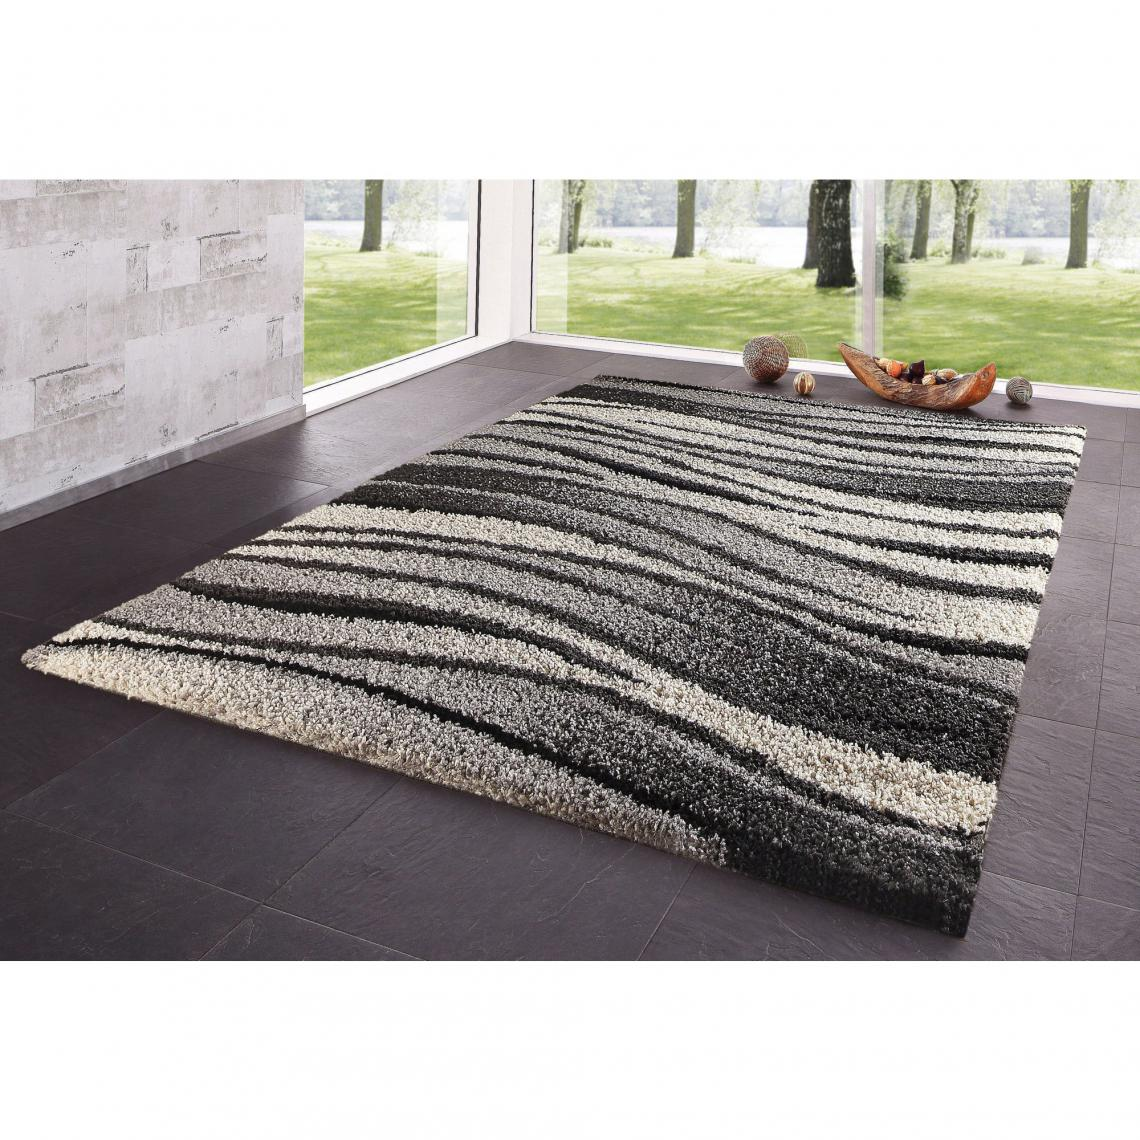 Tapis Rectangulaire Motif Graphique Nuances De Gris My Home 3